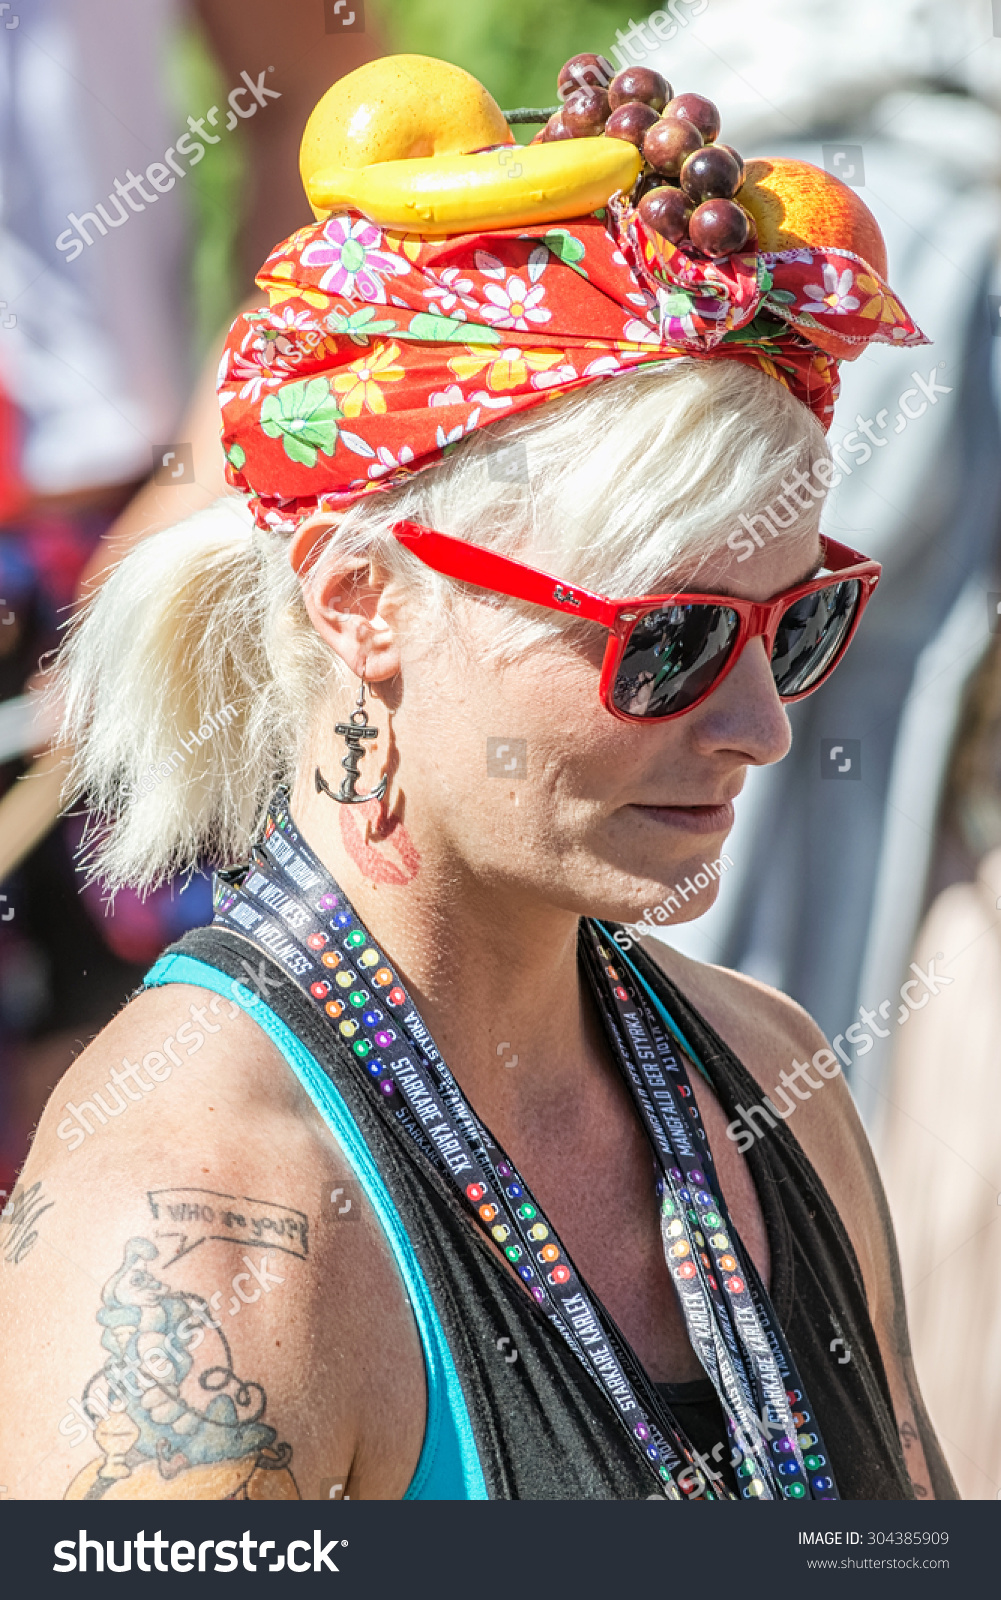 STOCKHOLM, SWEDEN - AUGUST 1, 2015: Blonde woman with fruits on head giving  away neckbands at the Pride parade in Stockholm. Approx 400.000 spectators  at ...